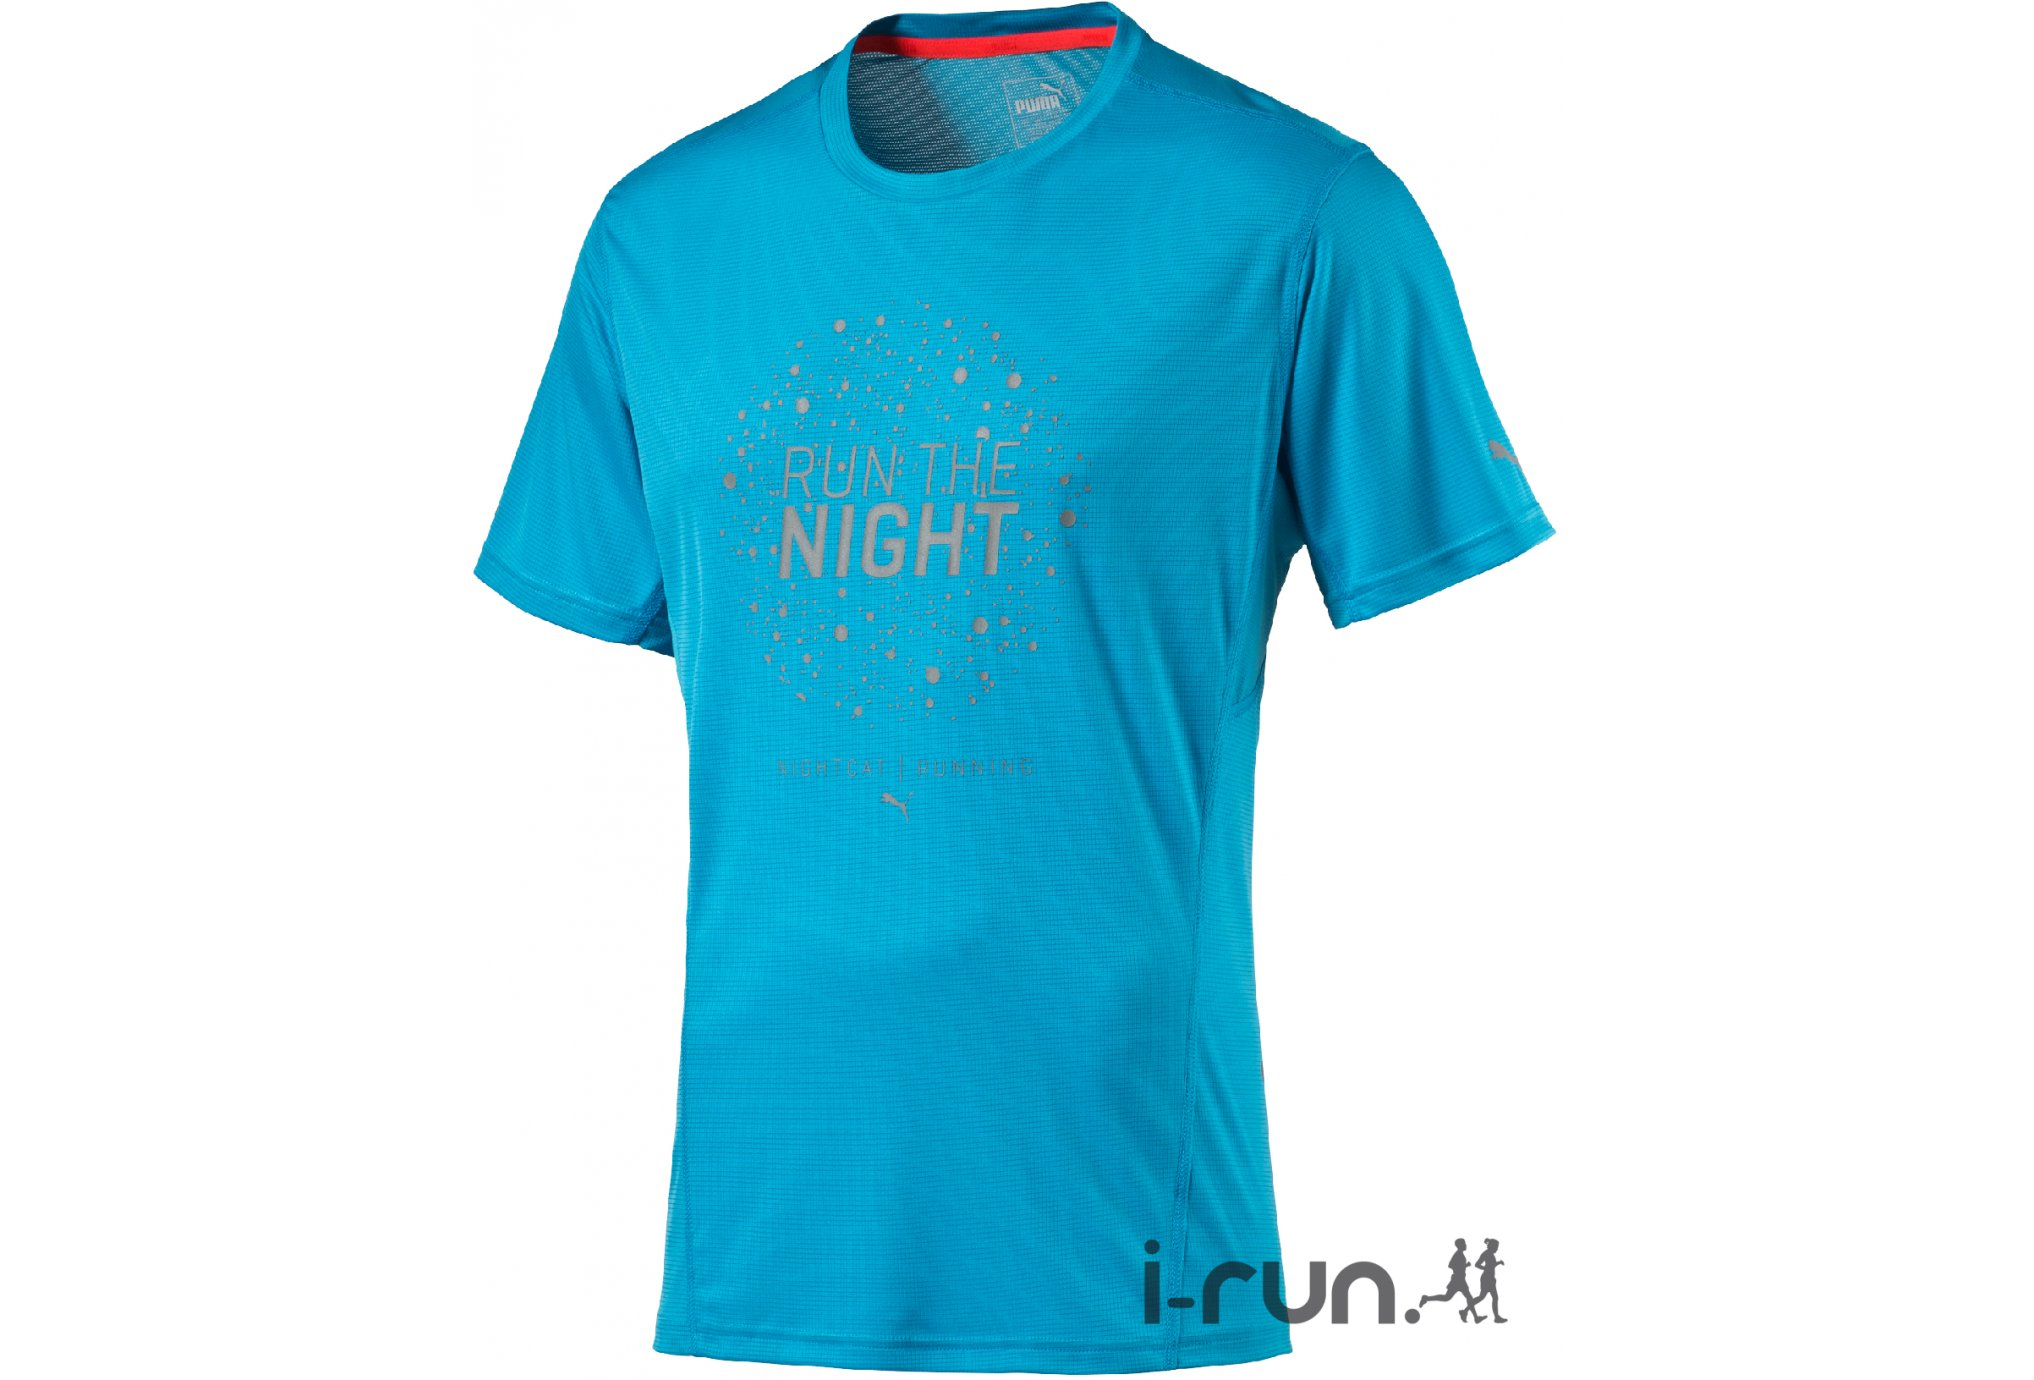 Puma Tee-shirt Night Cat M vêtement running homme